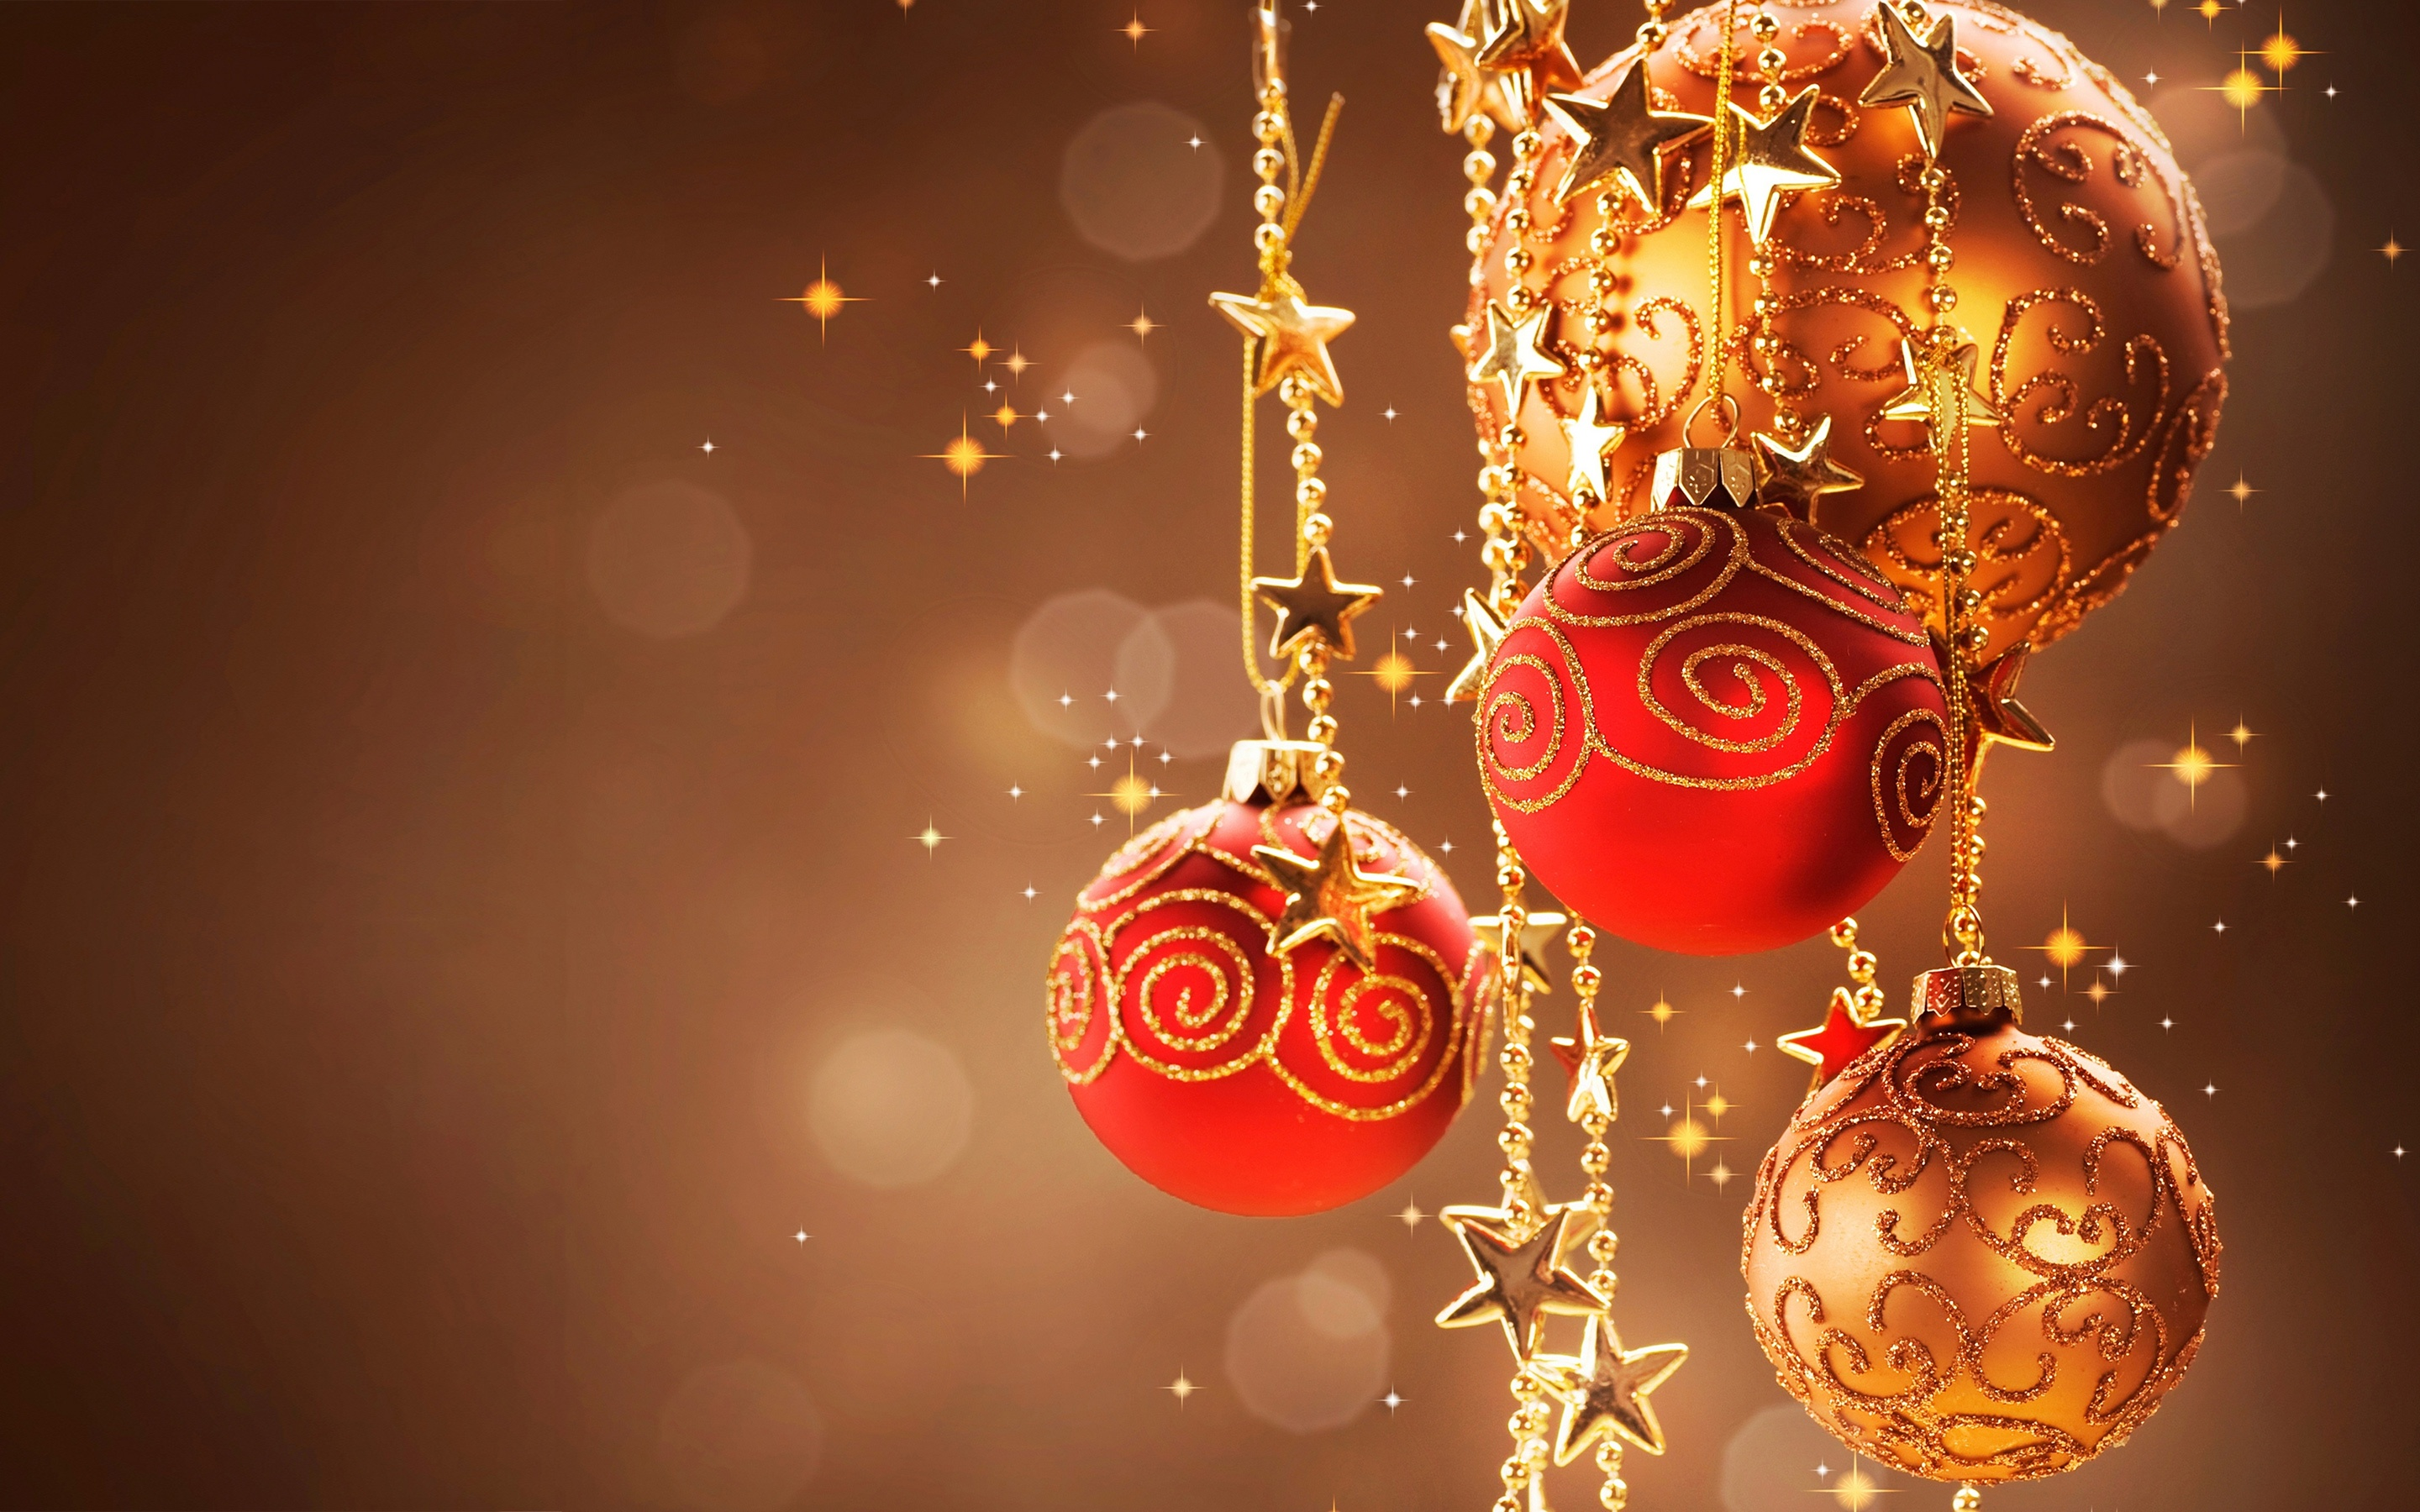 Christmas Ornaments Ball Image Wallpaper